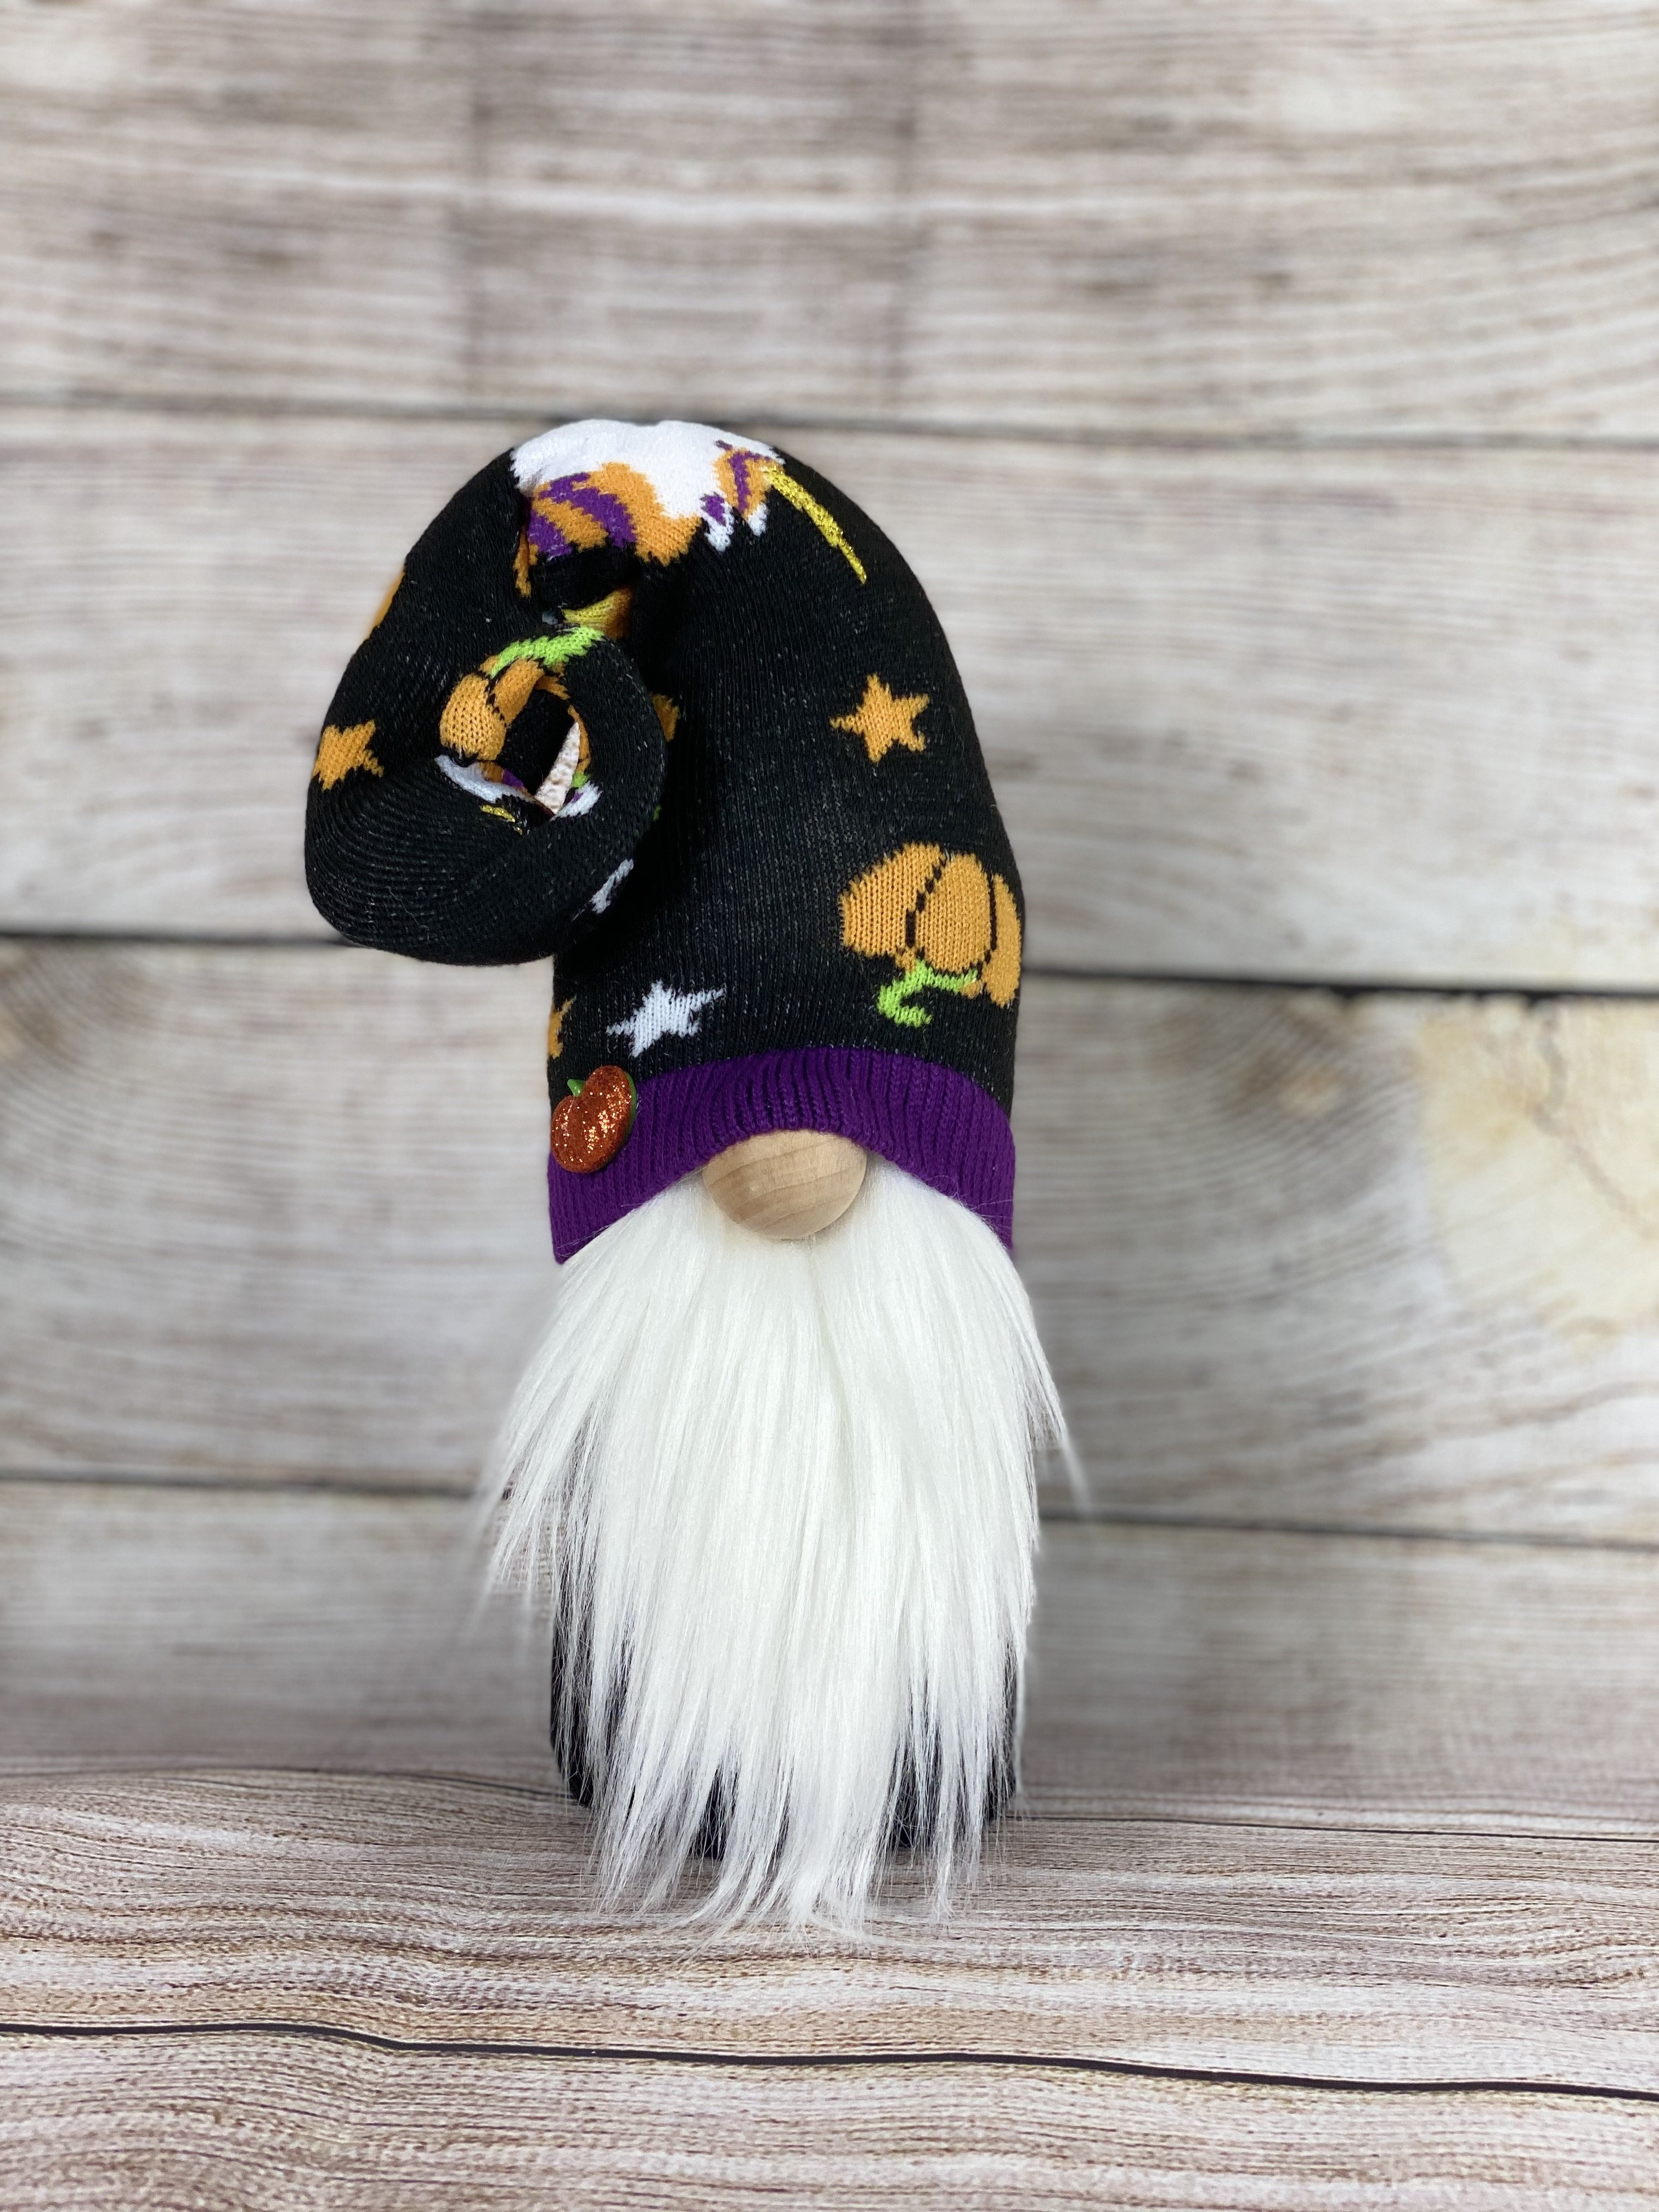 Halloween gnome with unicorns on hat